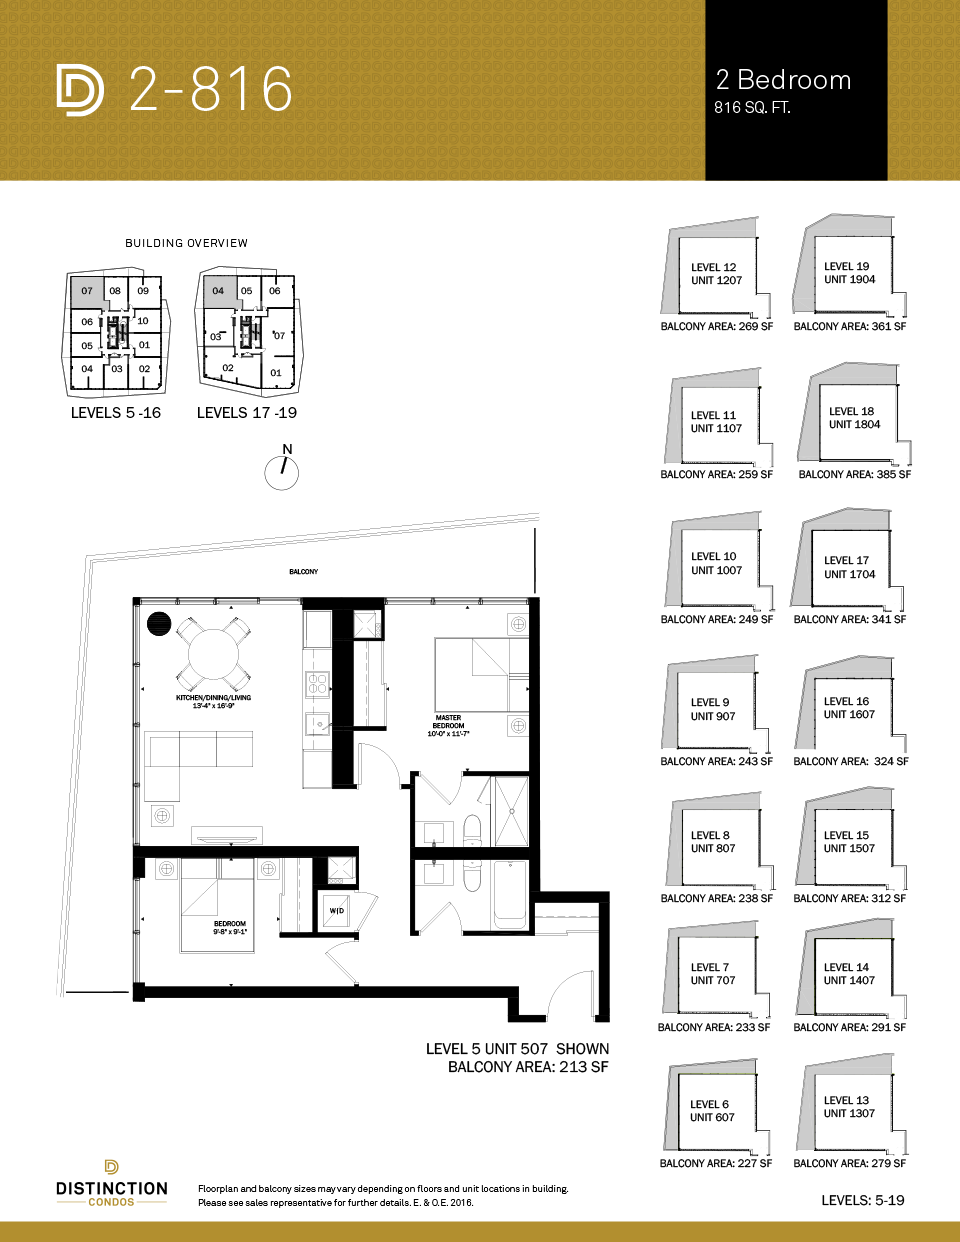 distinction condos floorplan 2-816_2